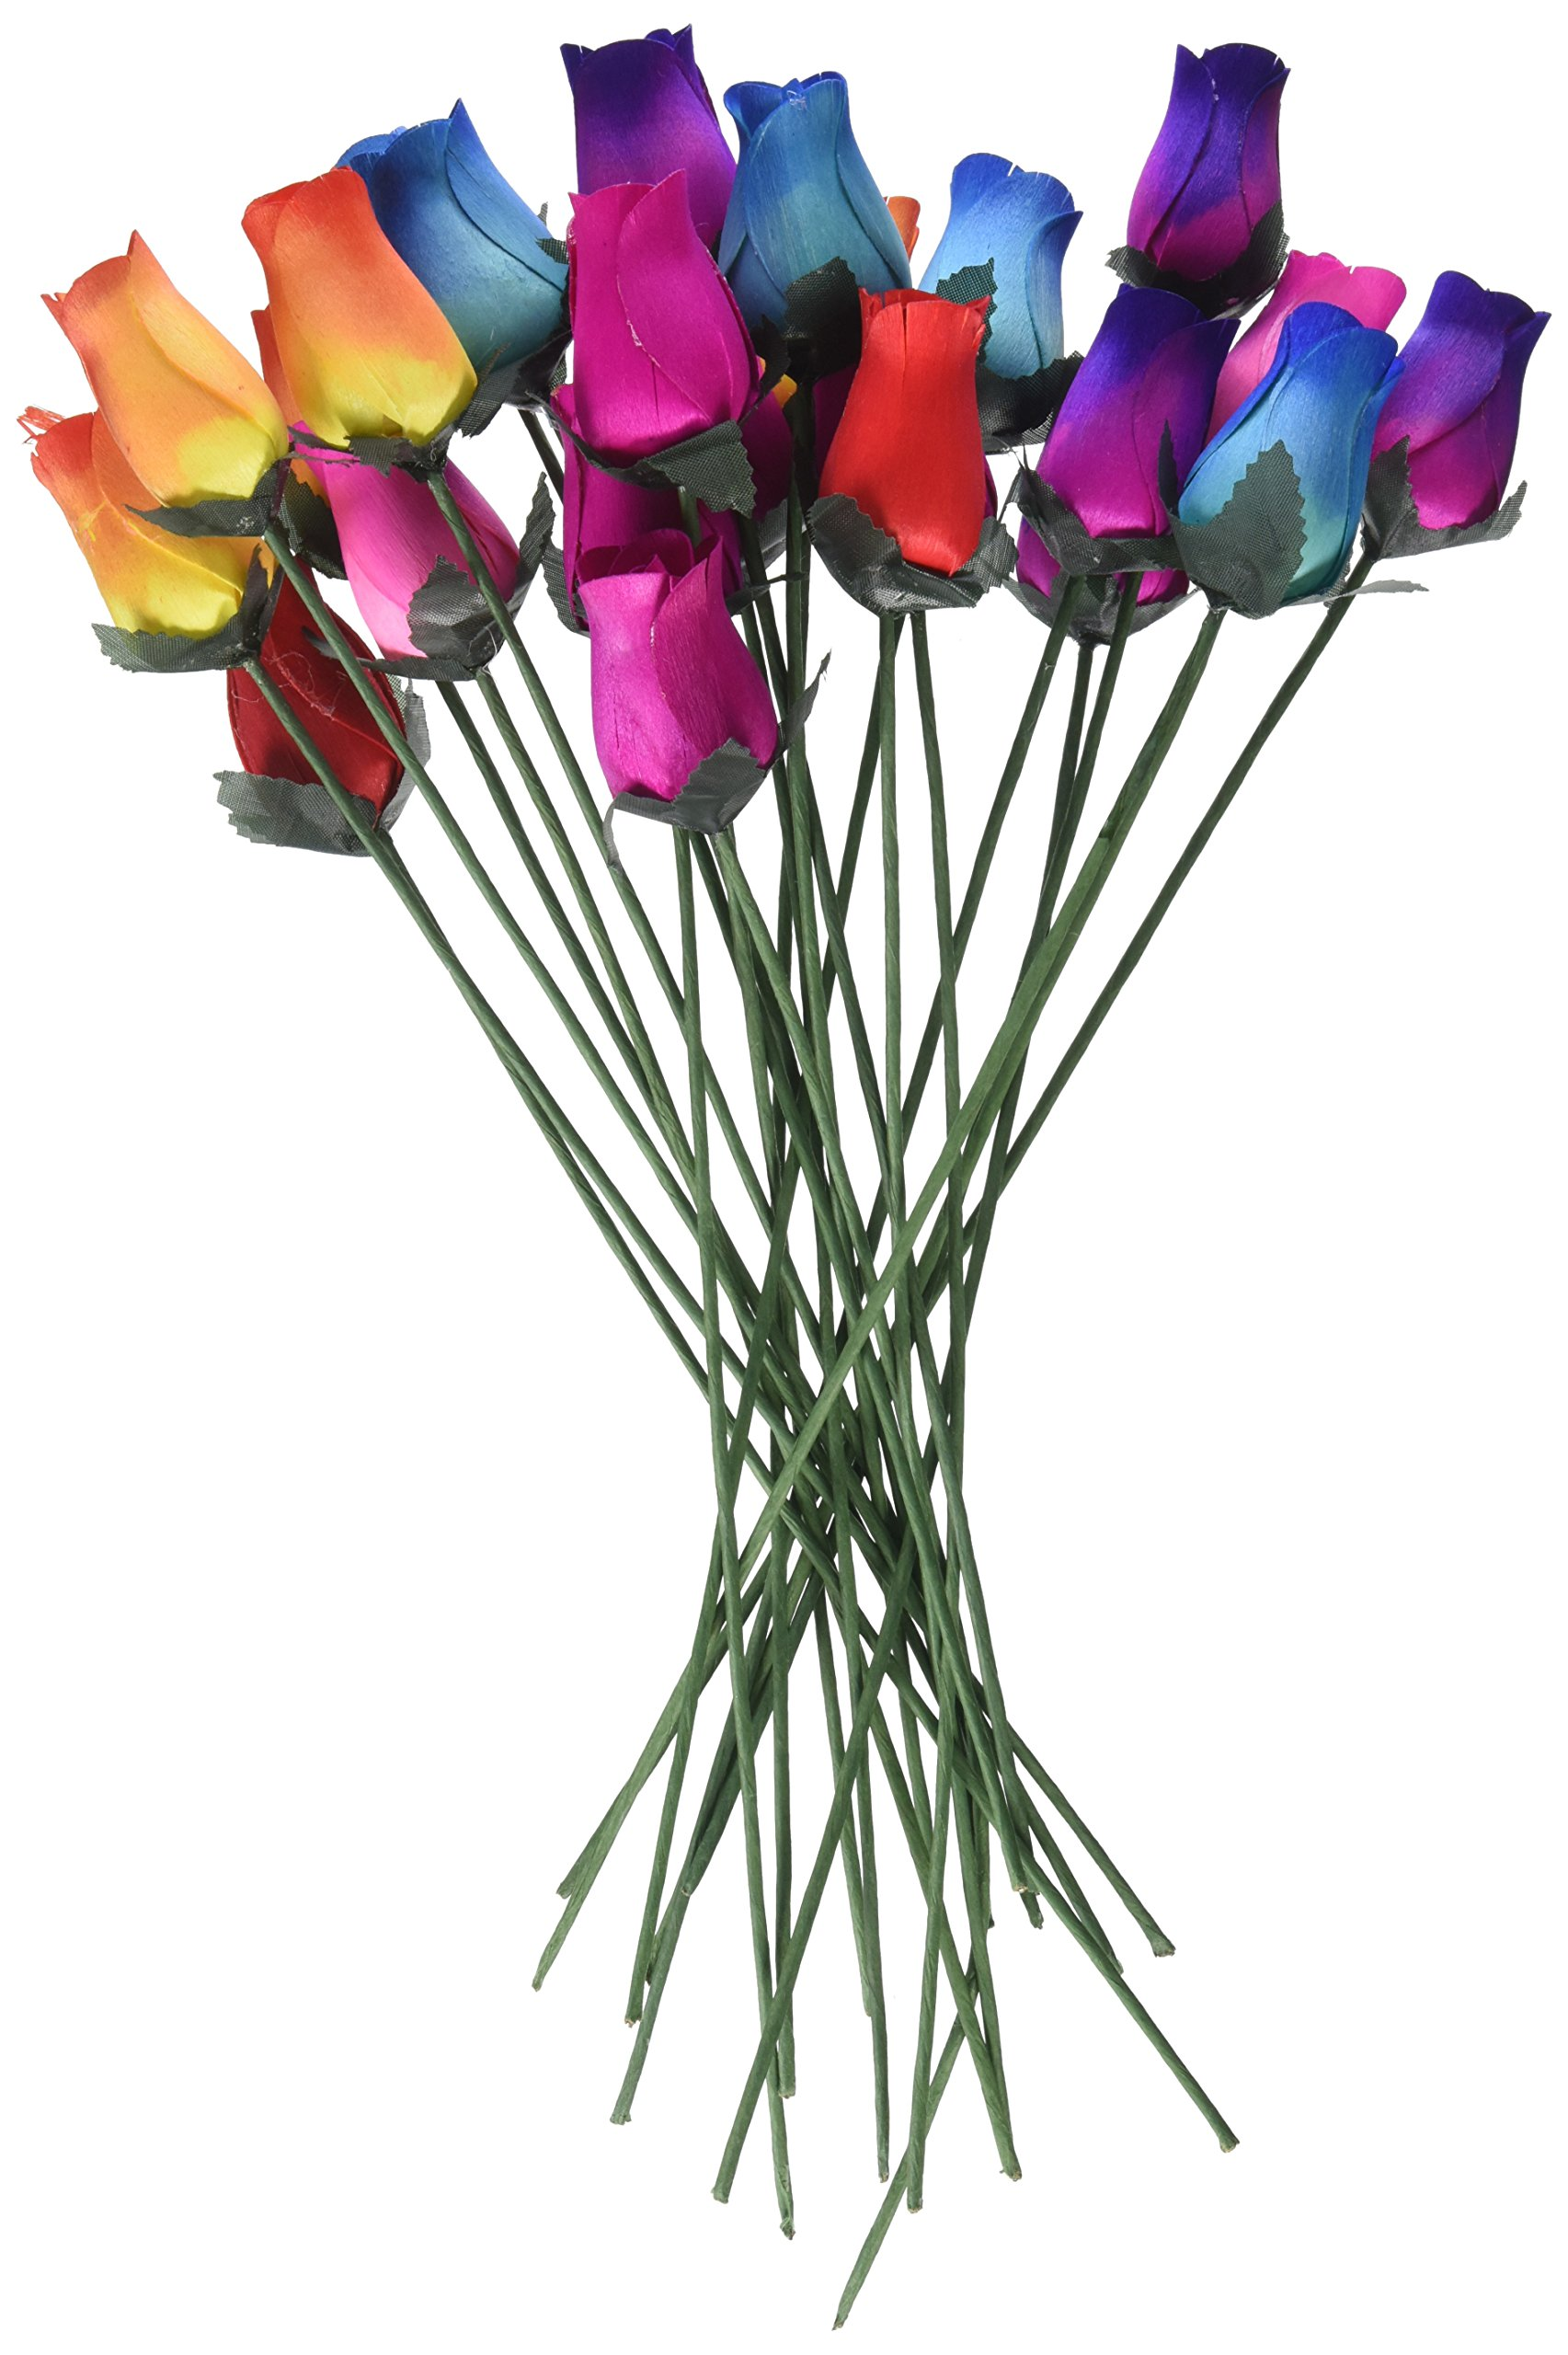 Details About Wooden Roses 2 Dozen 24 Mixed Color Bouquet Of Buds Artificial Flowers New